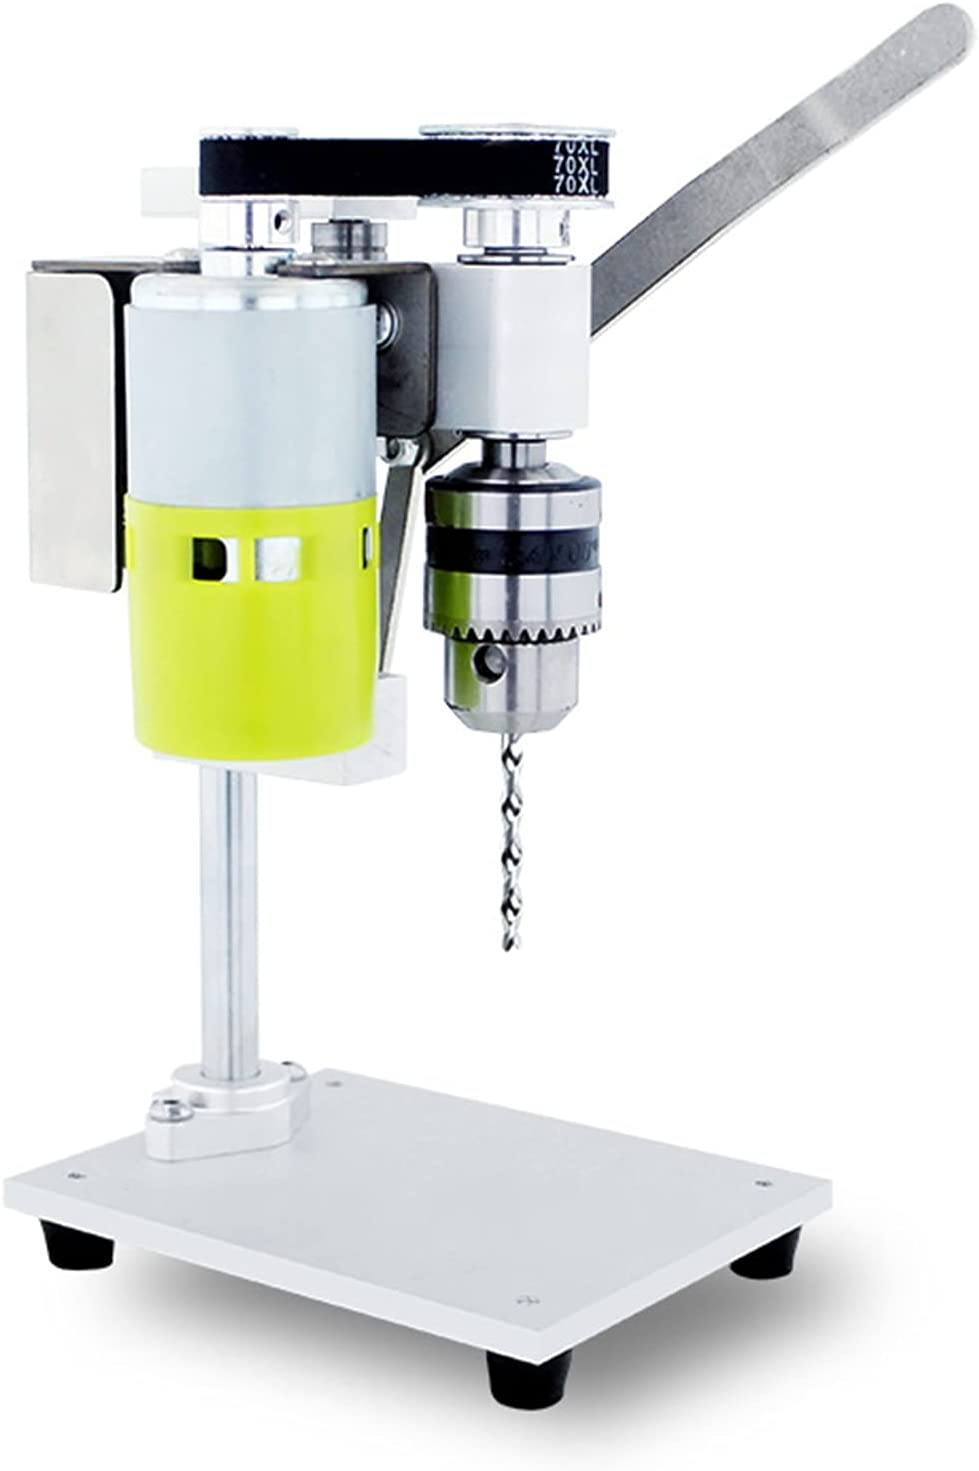 Low price enweQVQ Ranking TOP8 Benchtop Drill Presses 96w Press Mini S Variable